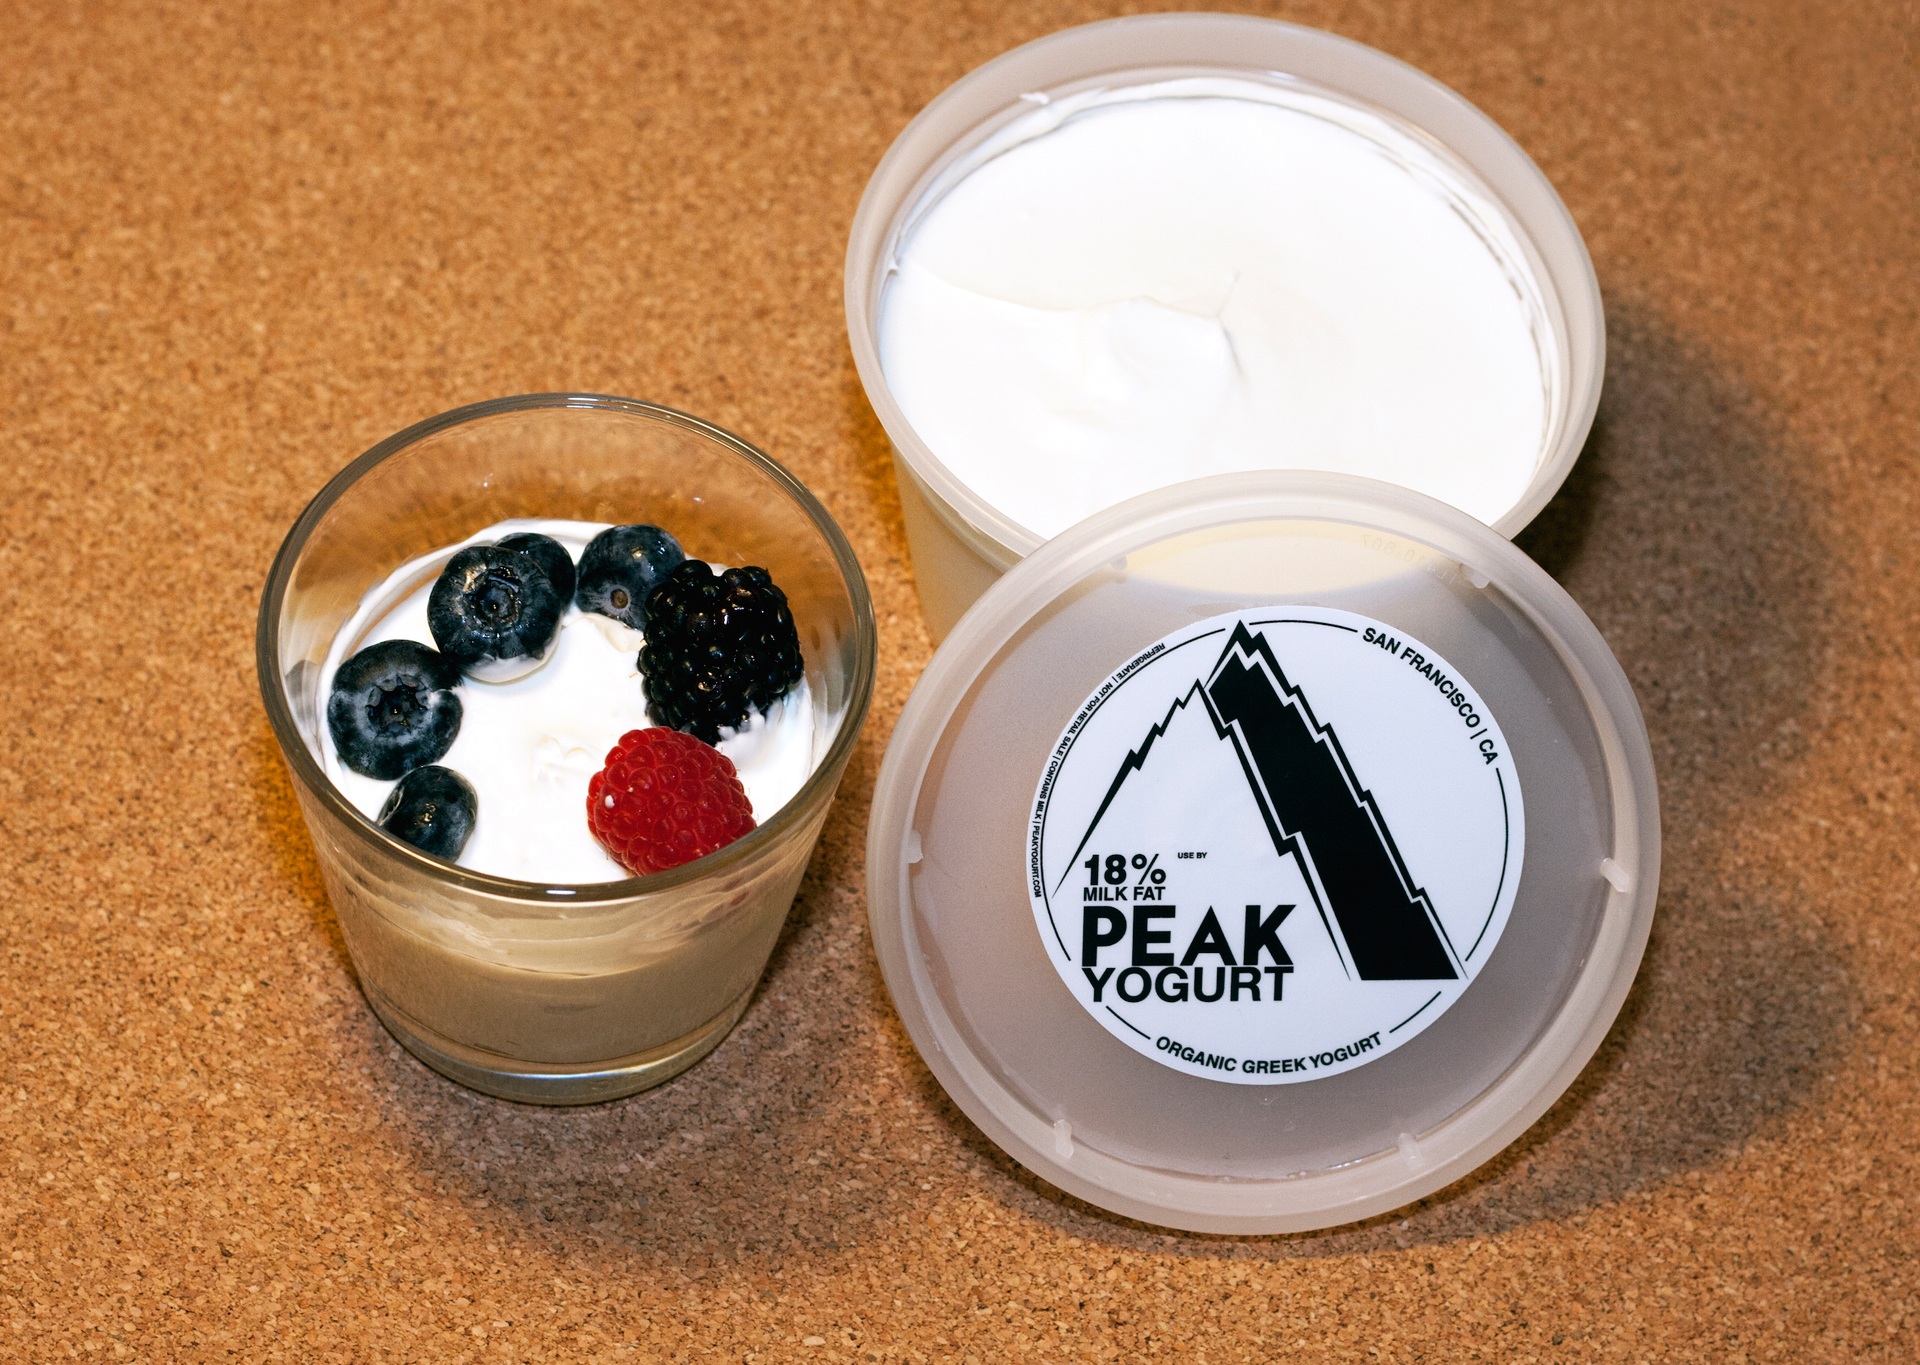 Peak Yogurt has triple the fat of most yogurts currently on the market.